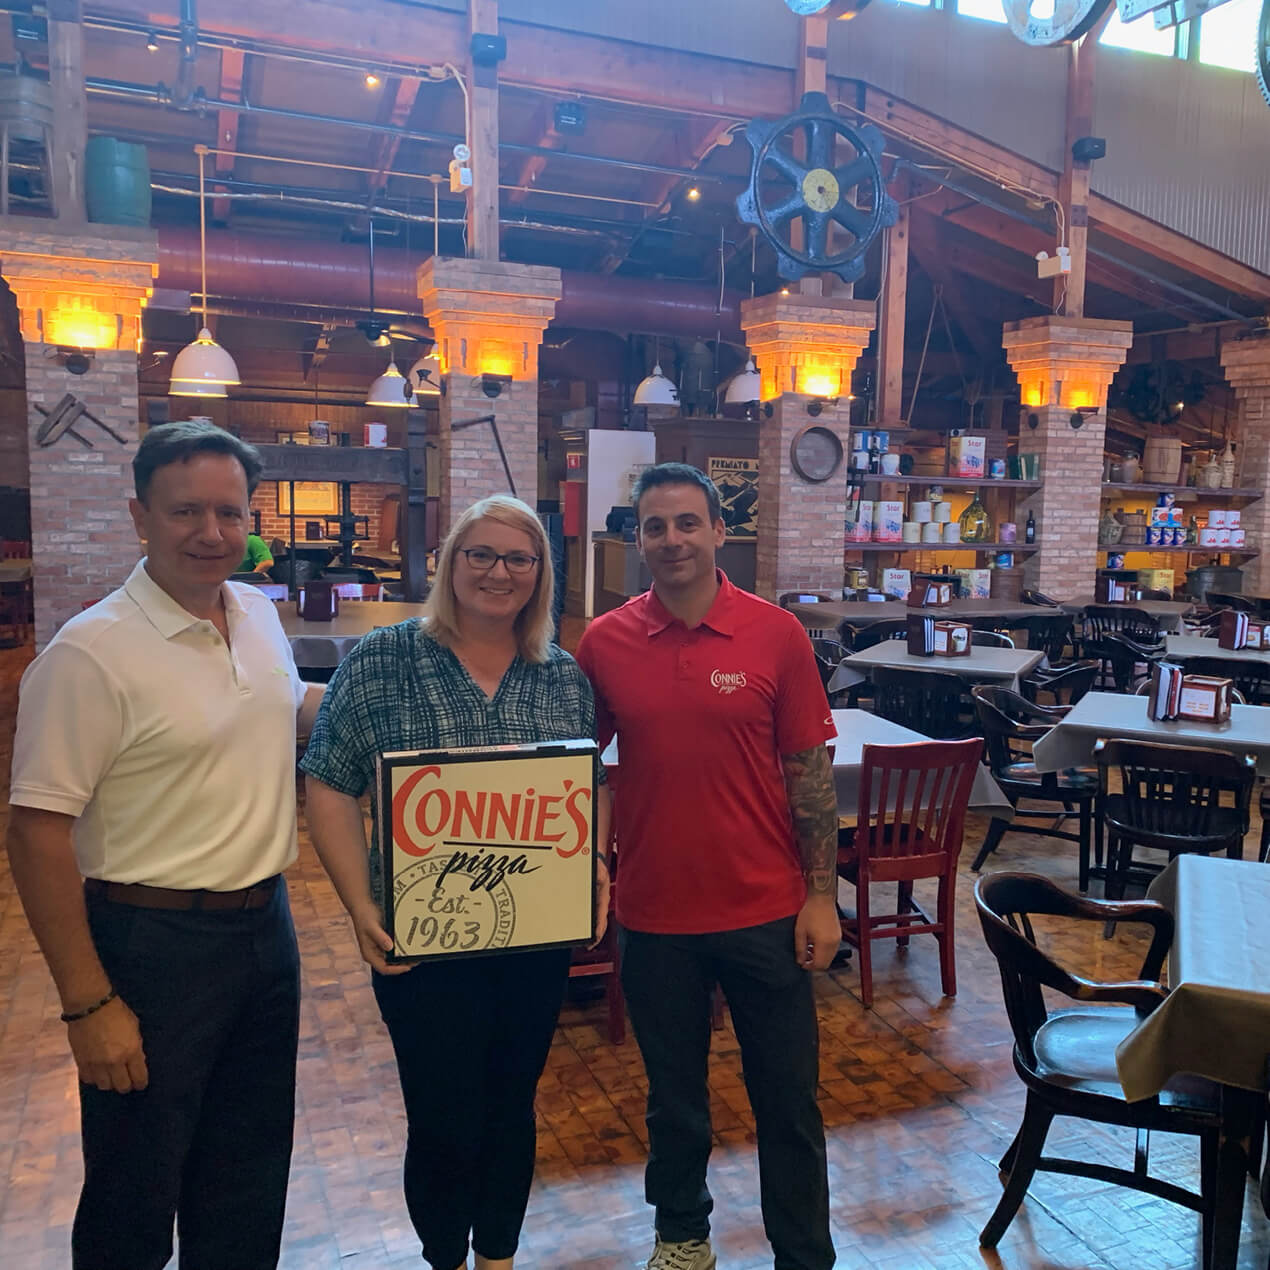 Dining in at Connie's Pizza